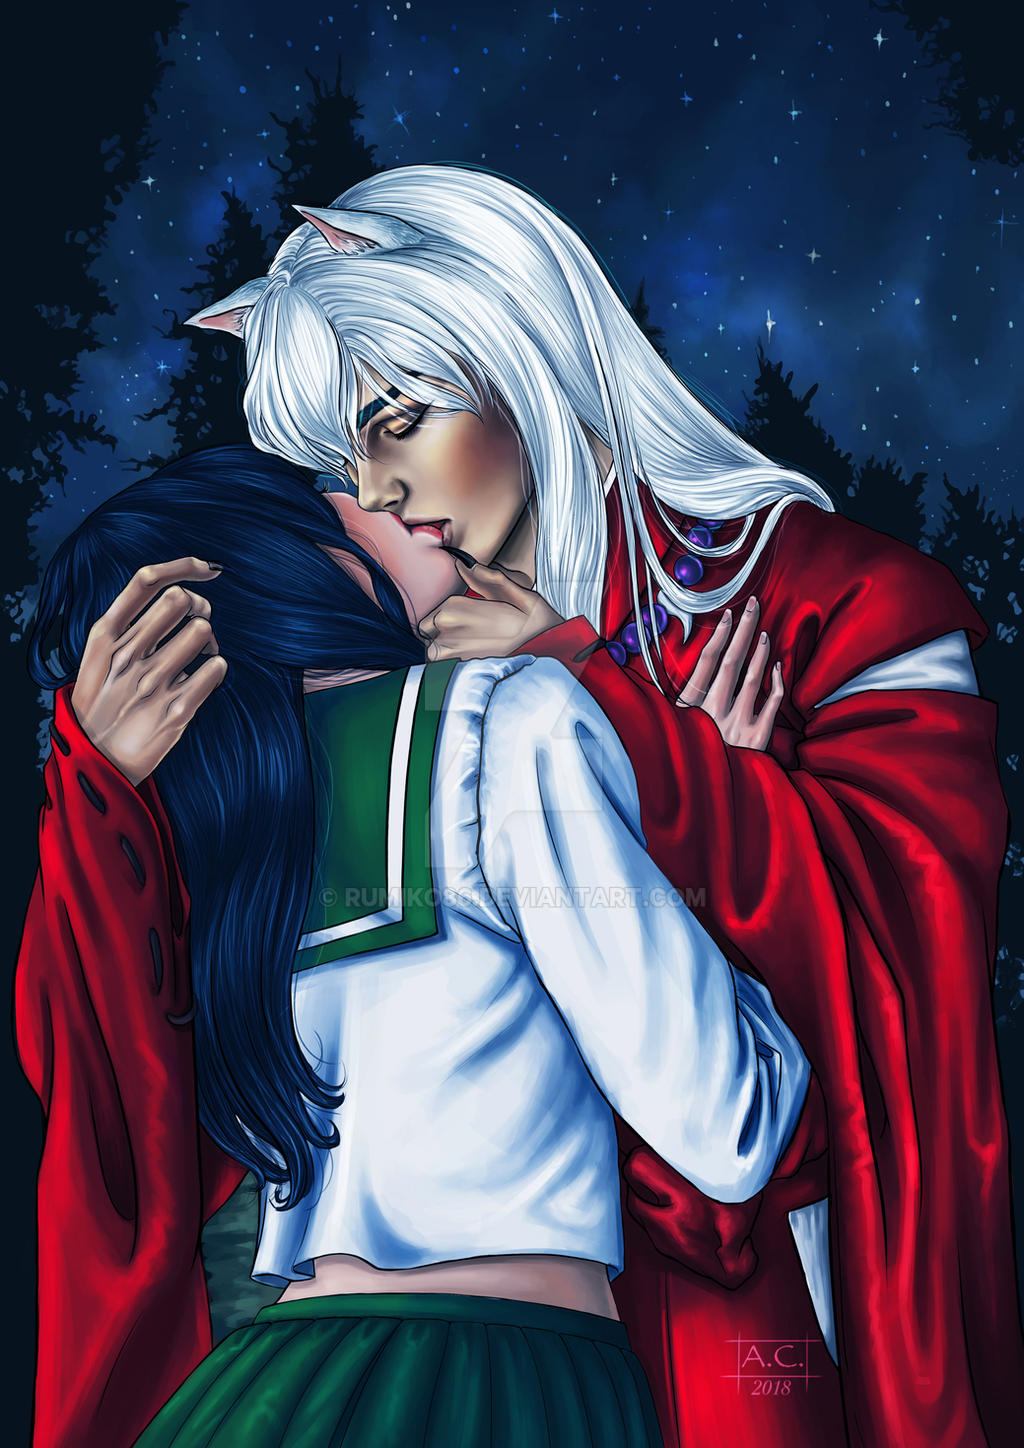 Kagome And Sesshomaru Kiss – images free download